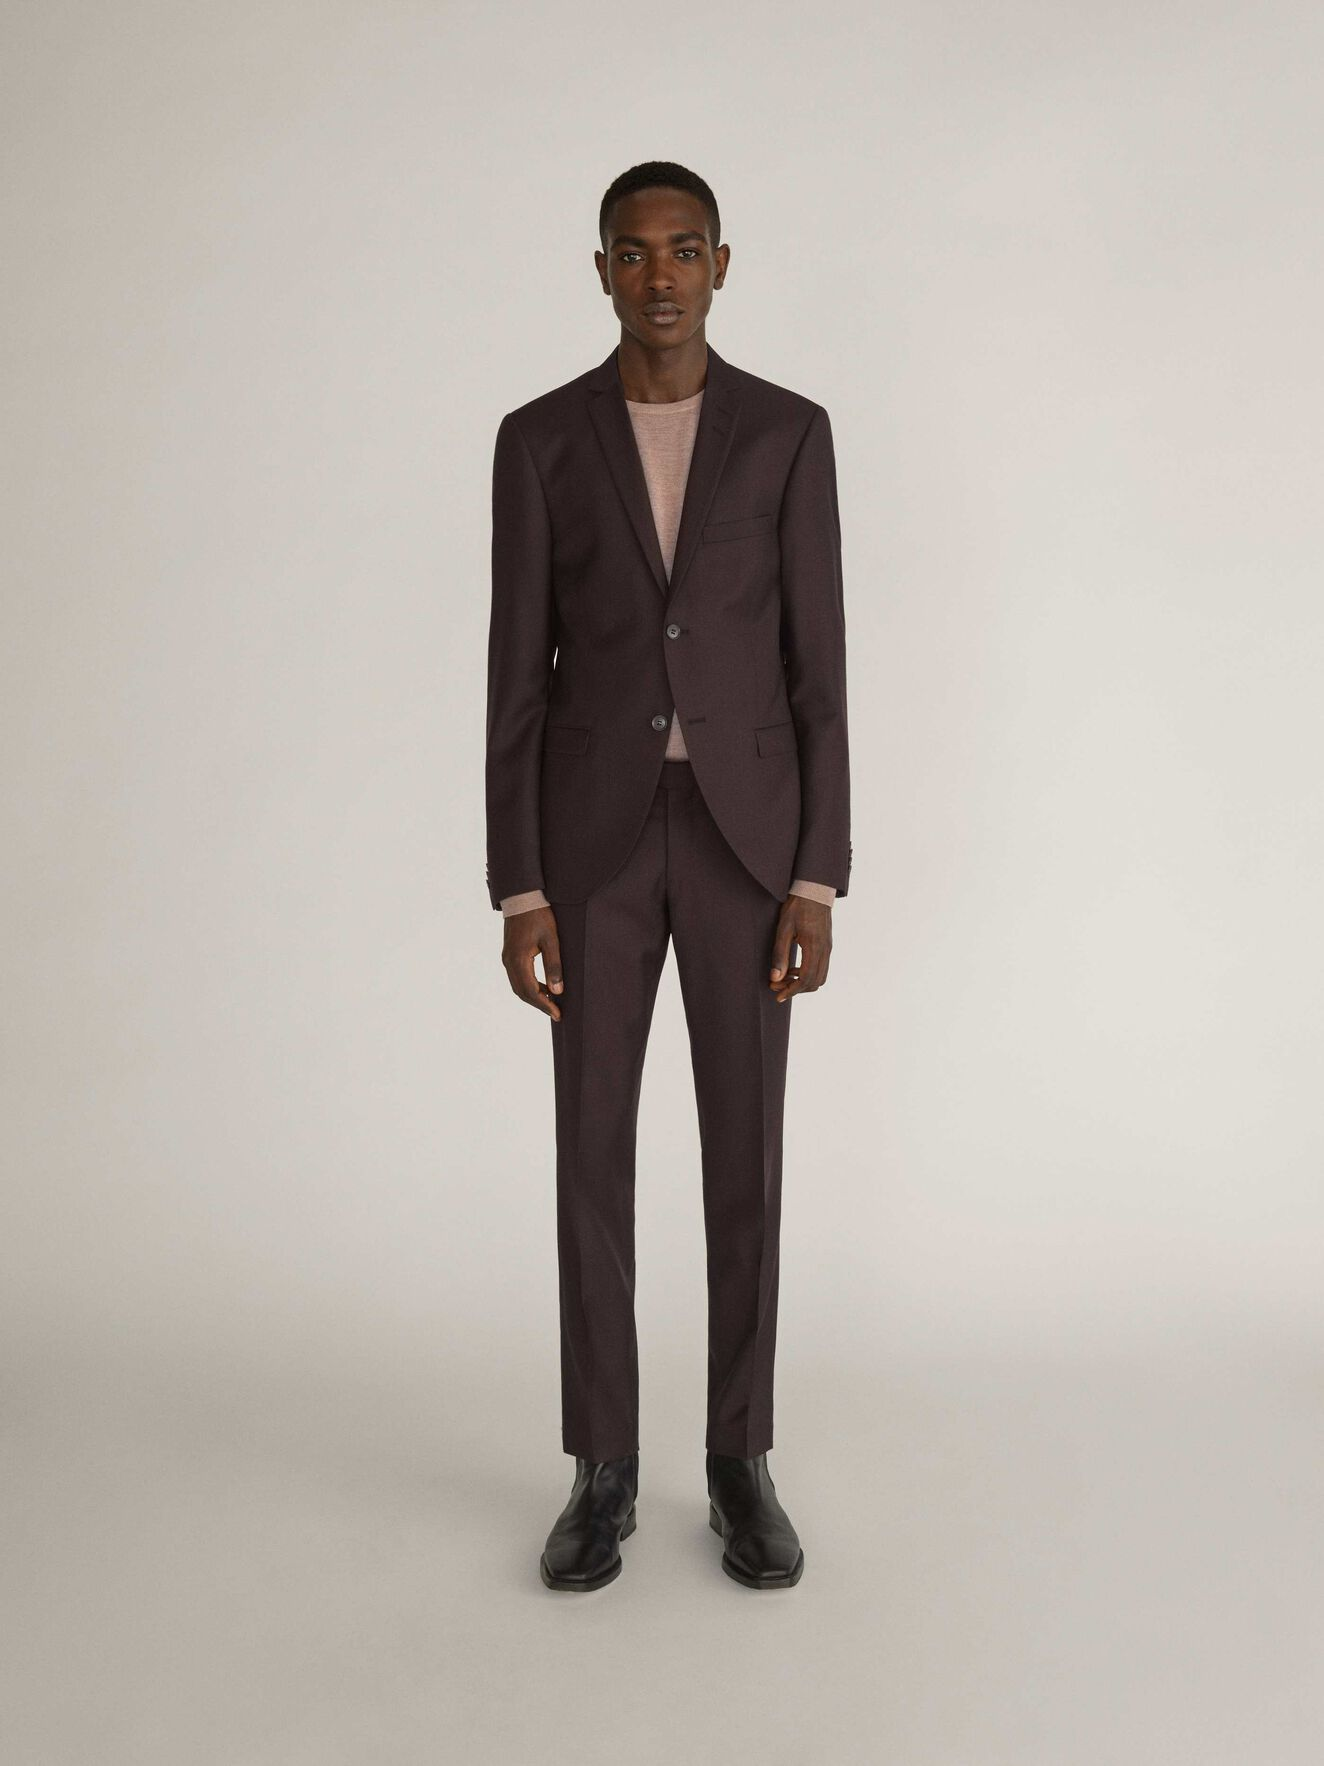 S.Jile Suit in Noon Plum from Tiger of Sweden